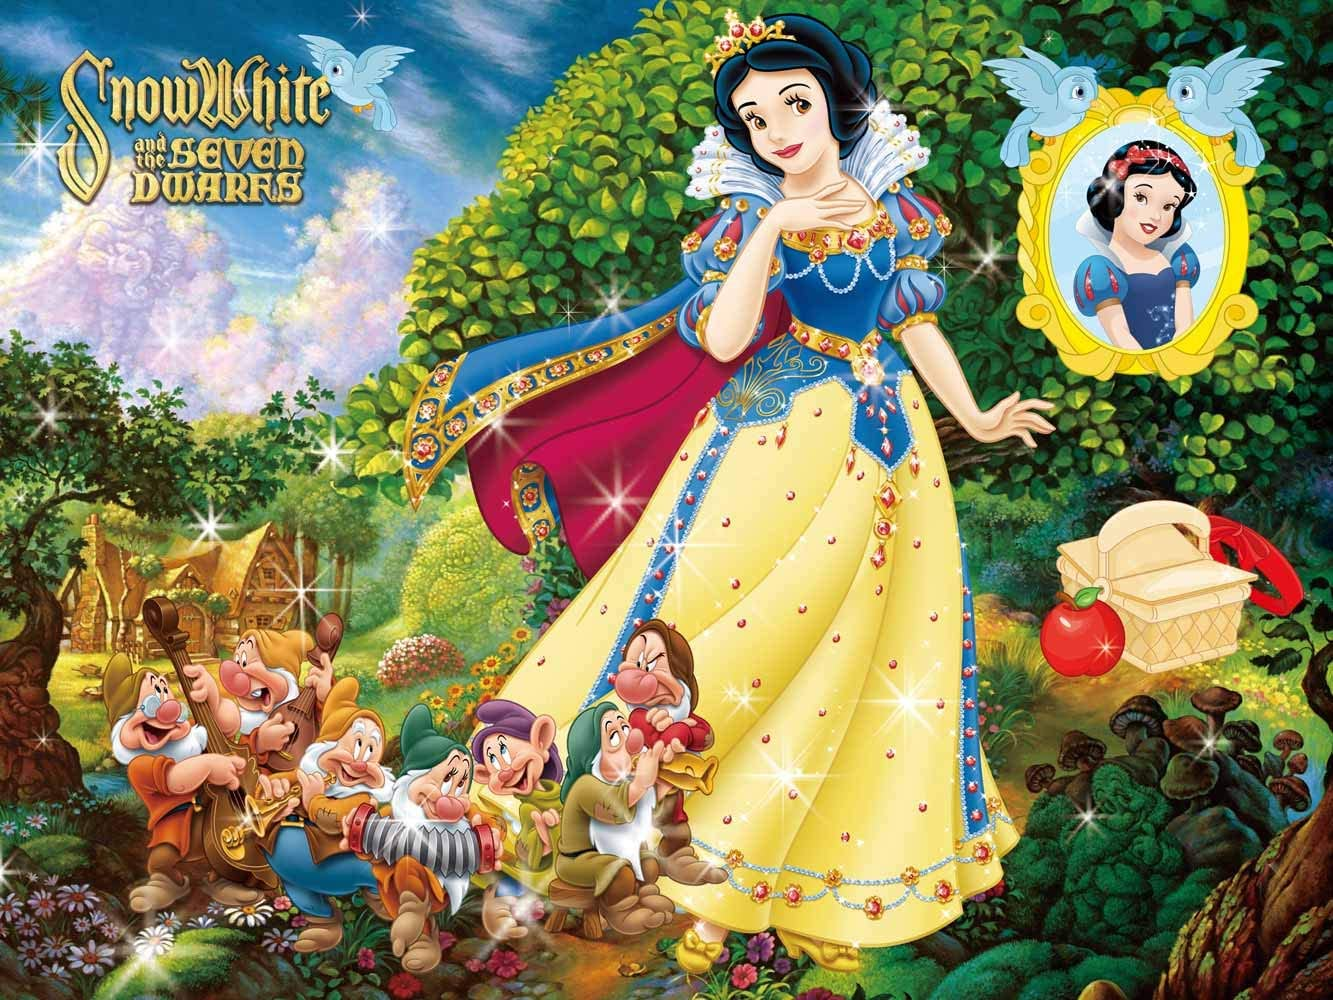 Snow White Princess Backdrop Poster Seven Dwarfs with Castle Fairy Tale Story Background for Birthday Party Table Top Banner Baby Shower Backgrounds Backdrop for Girls Disney Party Supplies Cake Table